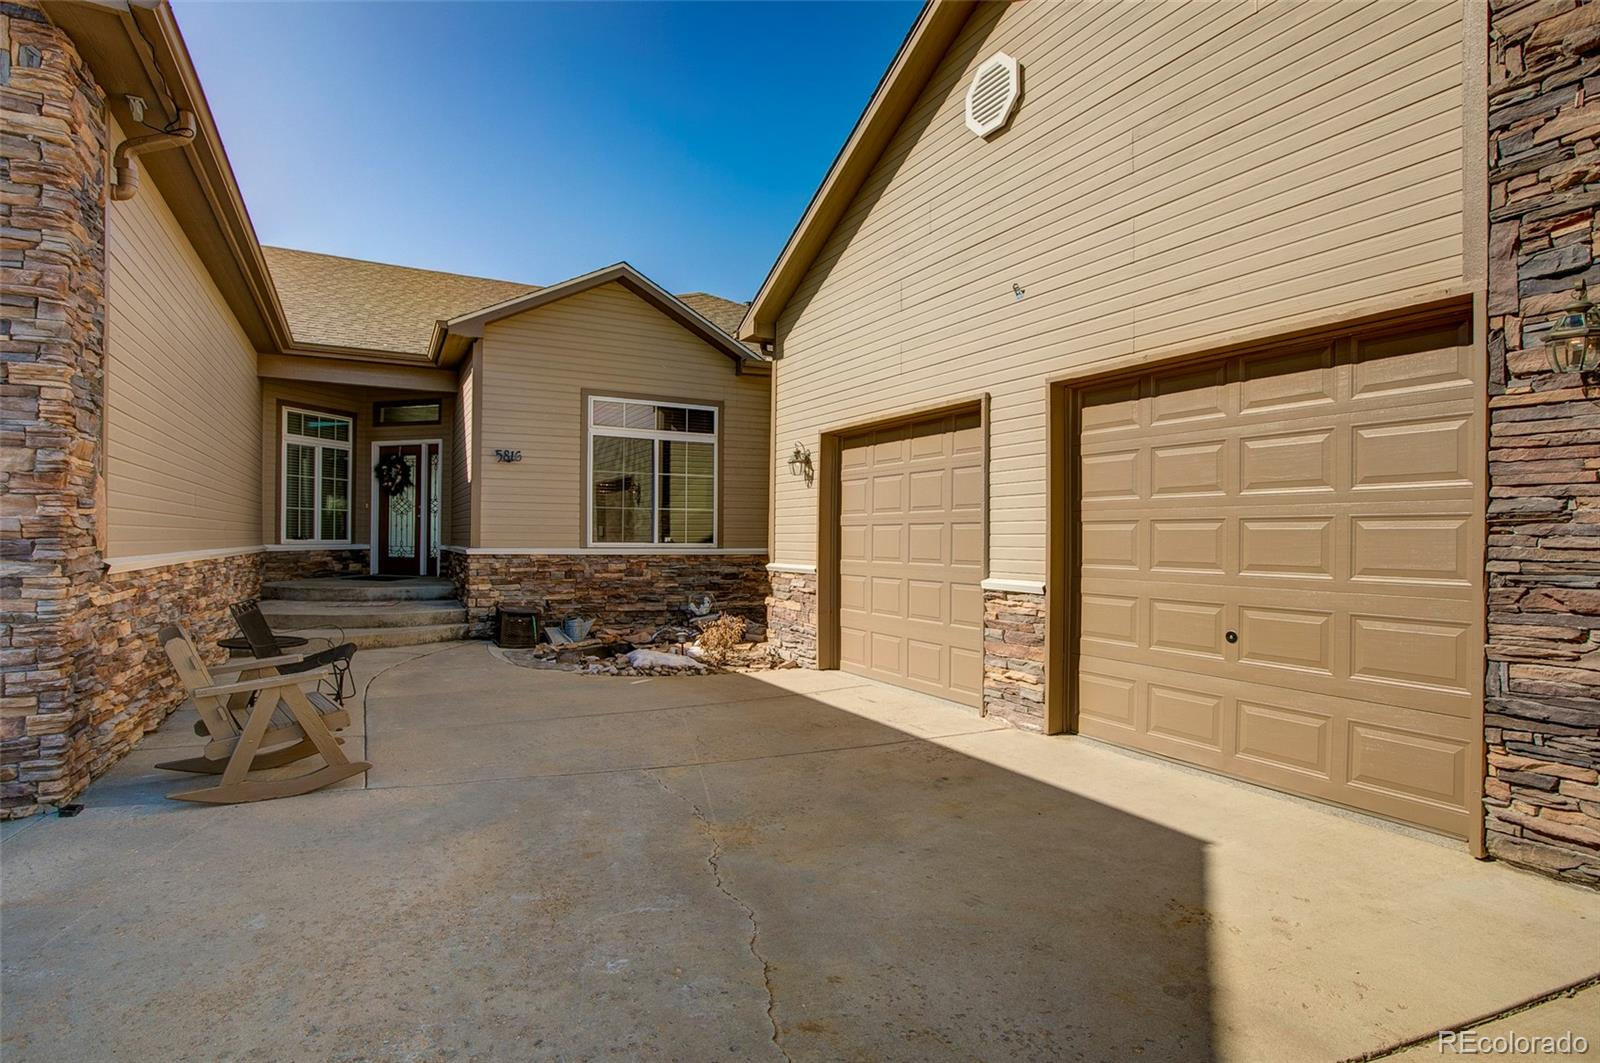 MLS# 7126152 - 3 - 5816 W Conservation Drive, Frederick, CO 80504